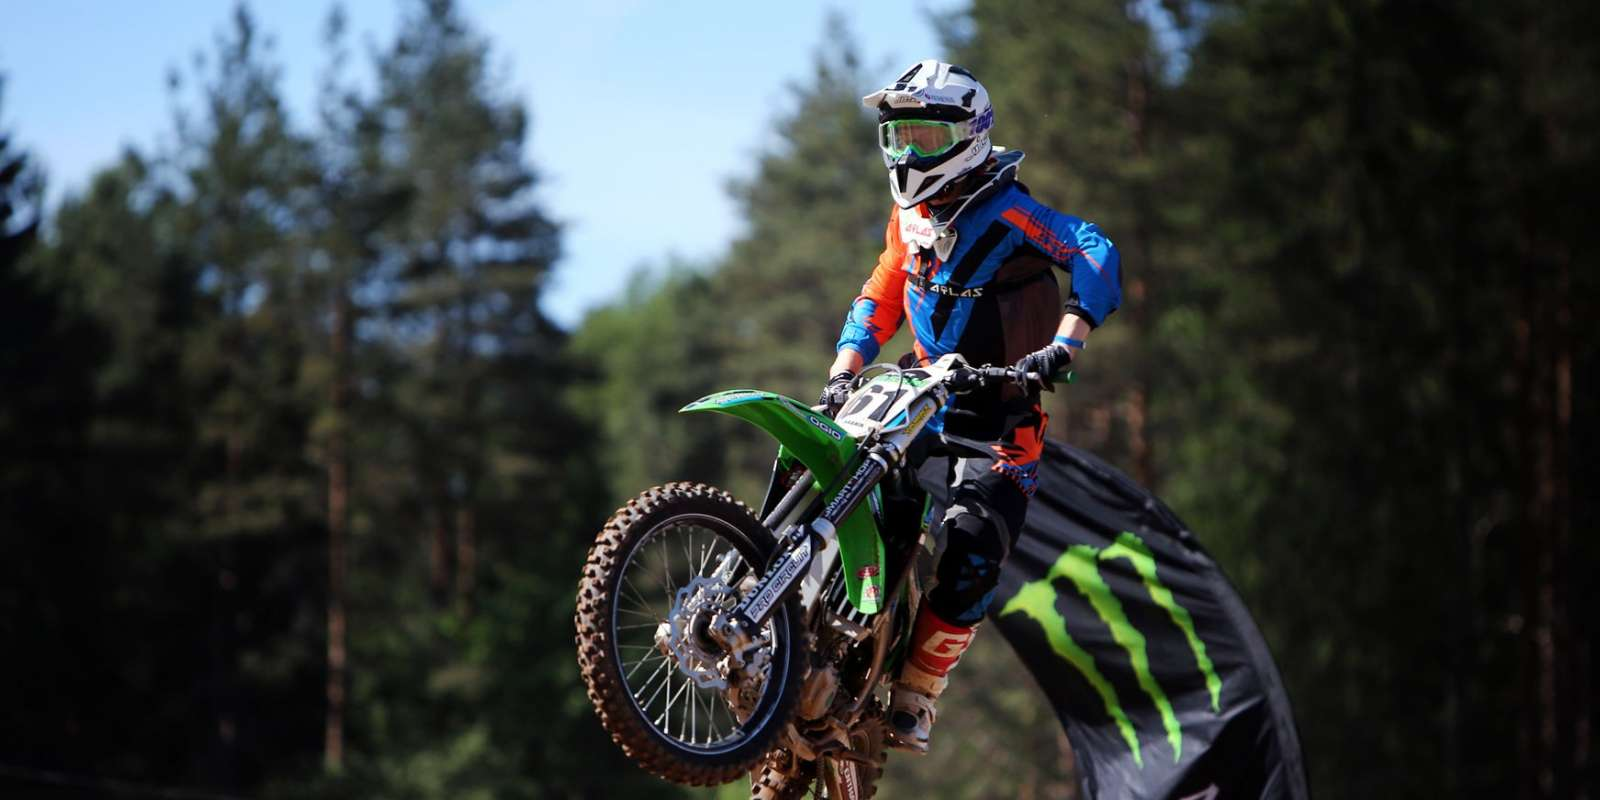 Images from 1st stage of Estonian Motocross Championship in Karksi